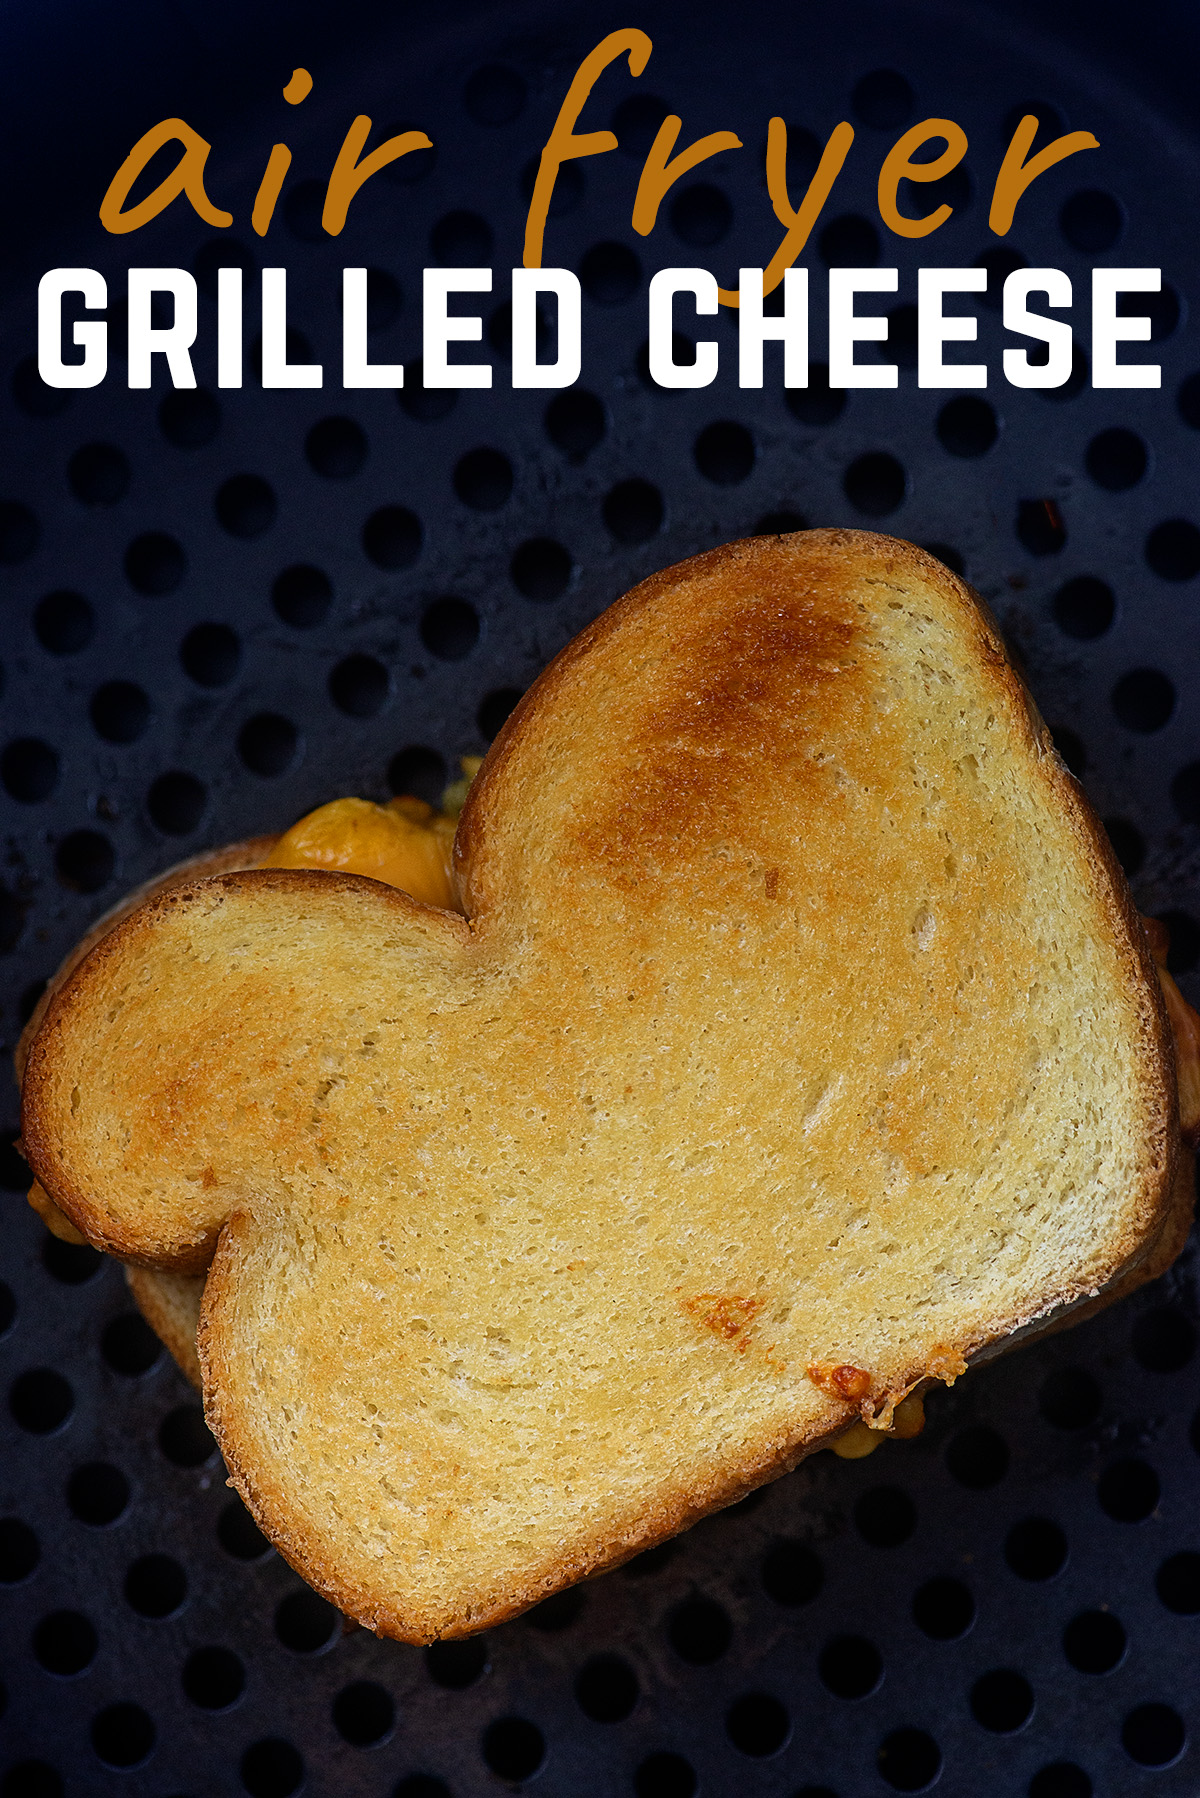 The air fryer makes the perfect crispy grilled cheese sandwich! So easy! #airfryer #sandwich #recipe